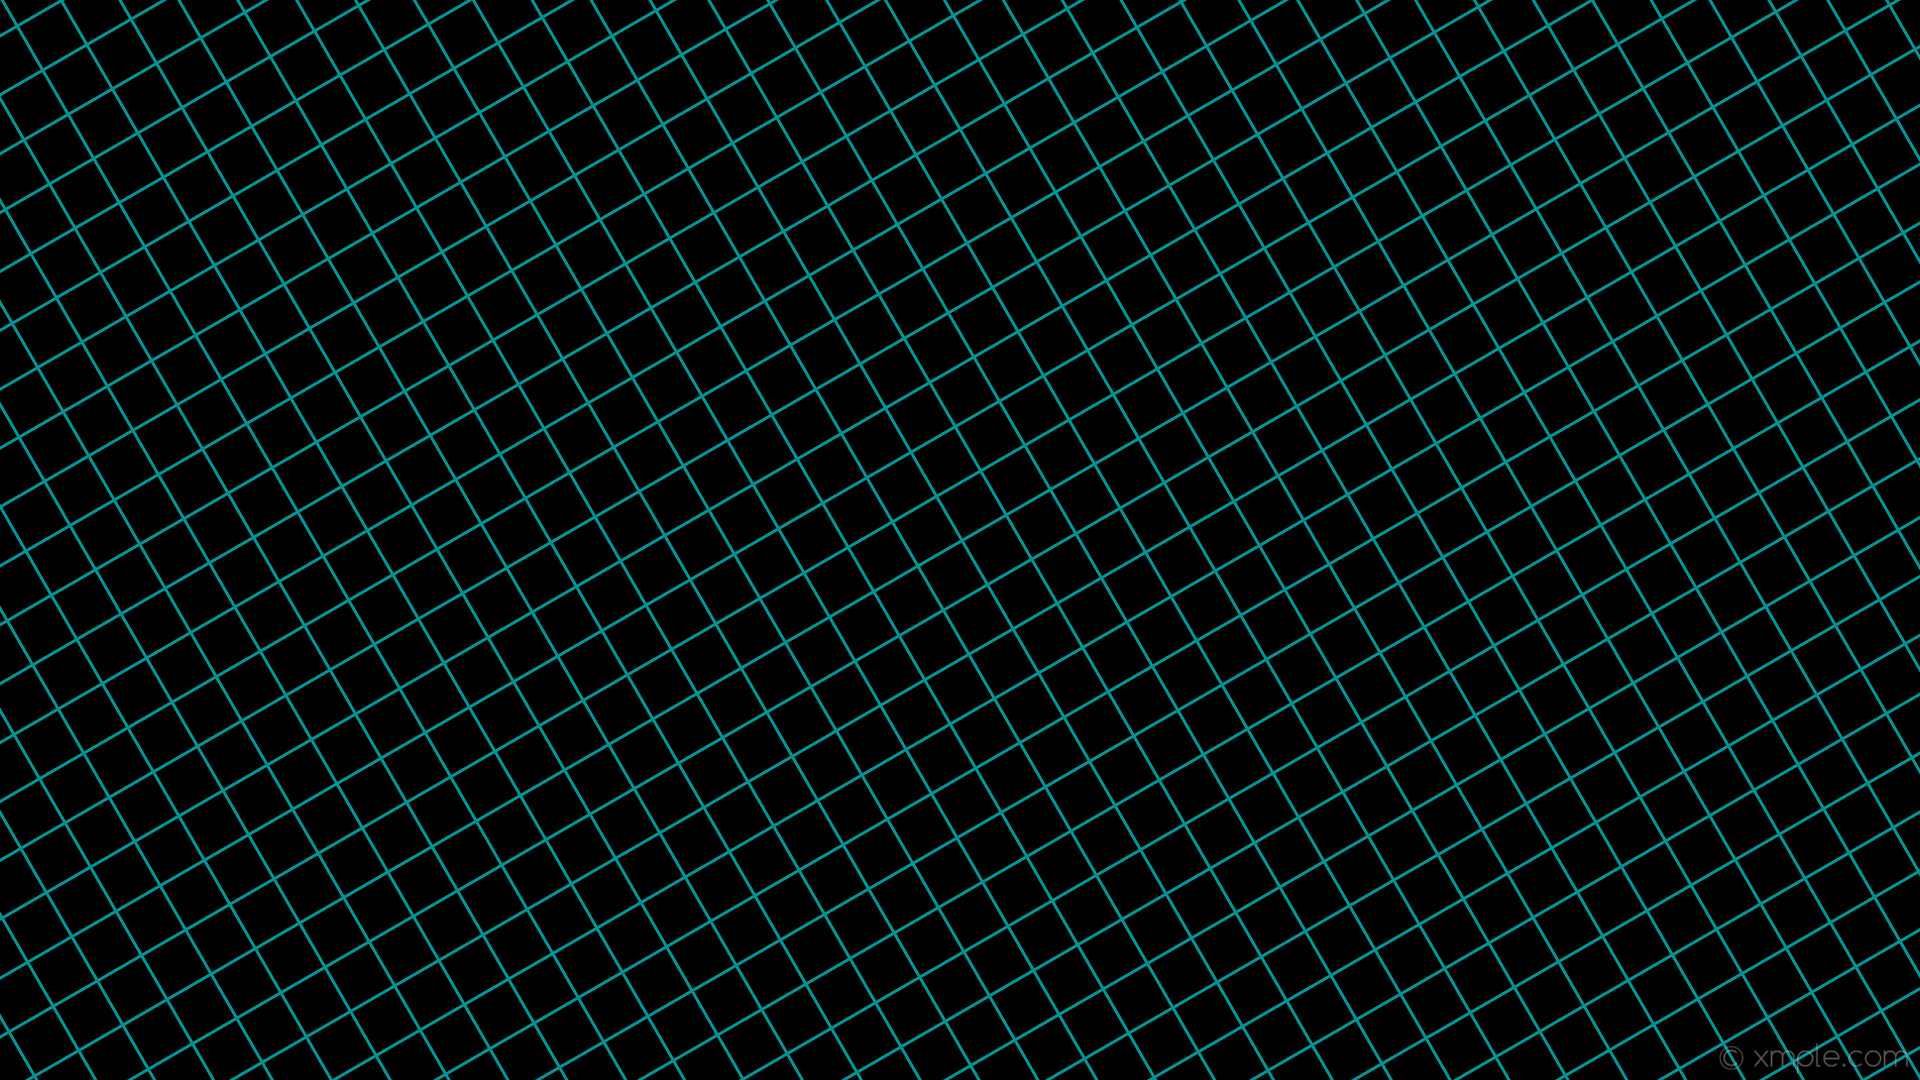 wallpaper graph paper blue black grid dark turquoise #000000 #00ced1 30°  3px 51px